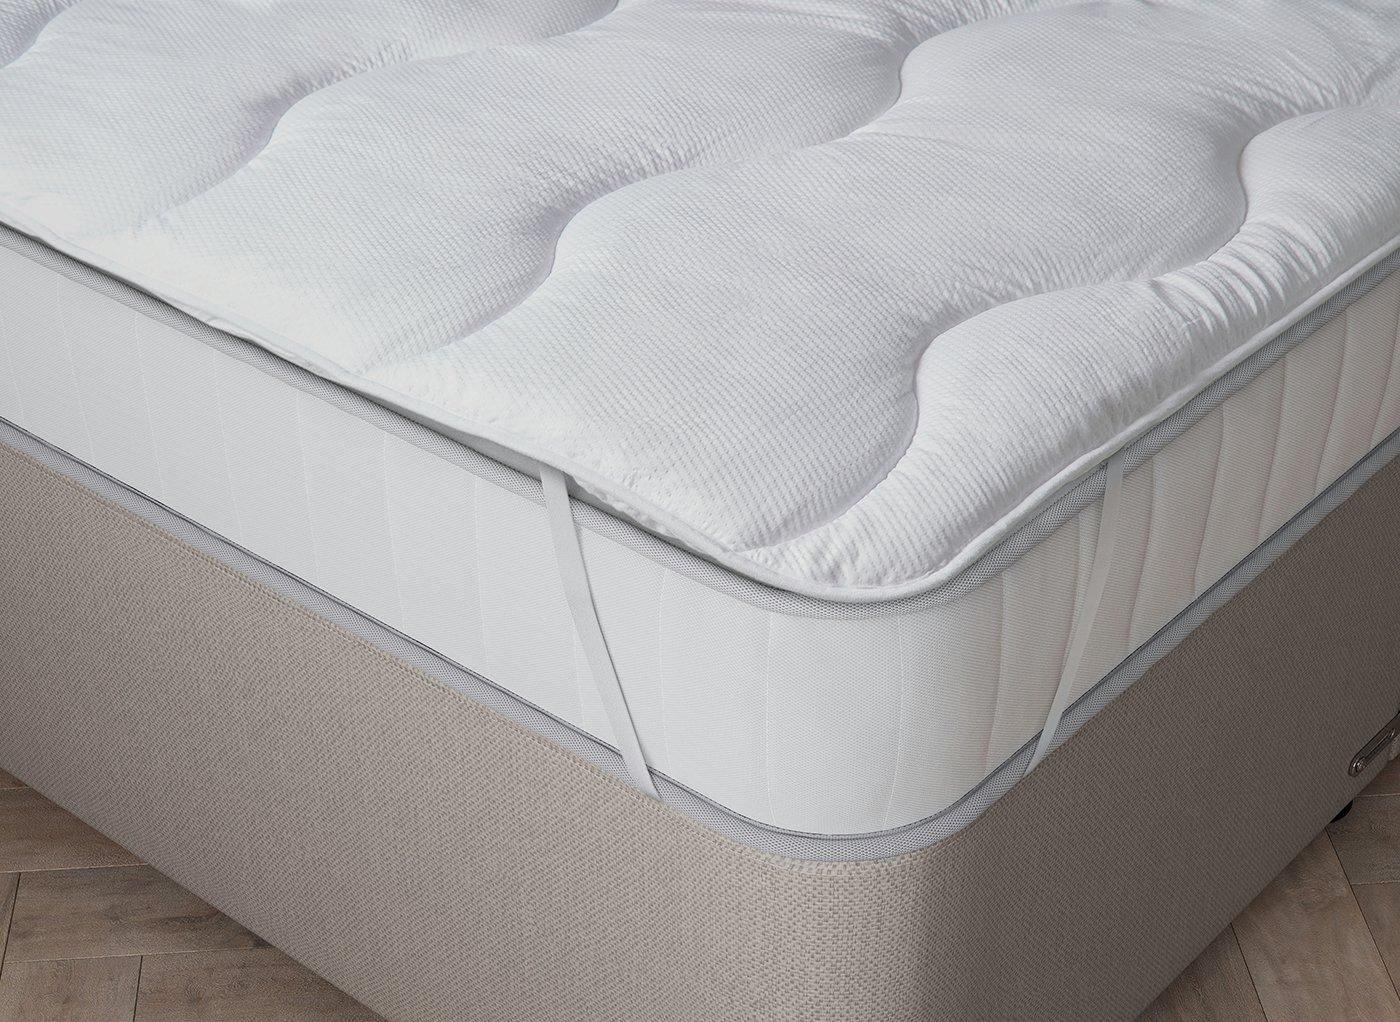 Doze Ultra Soft Washable Topper K 5'0 King